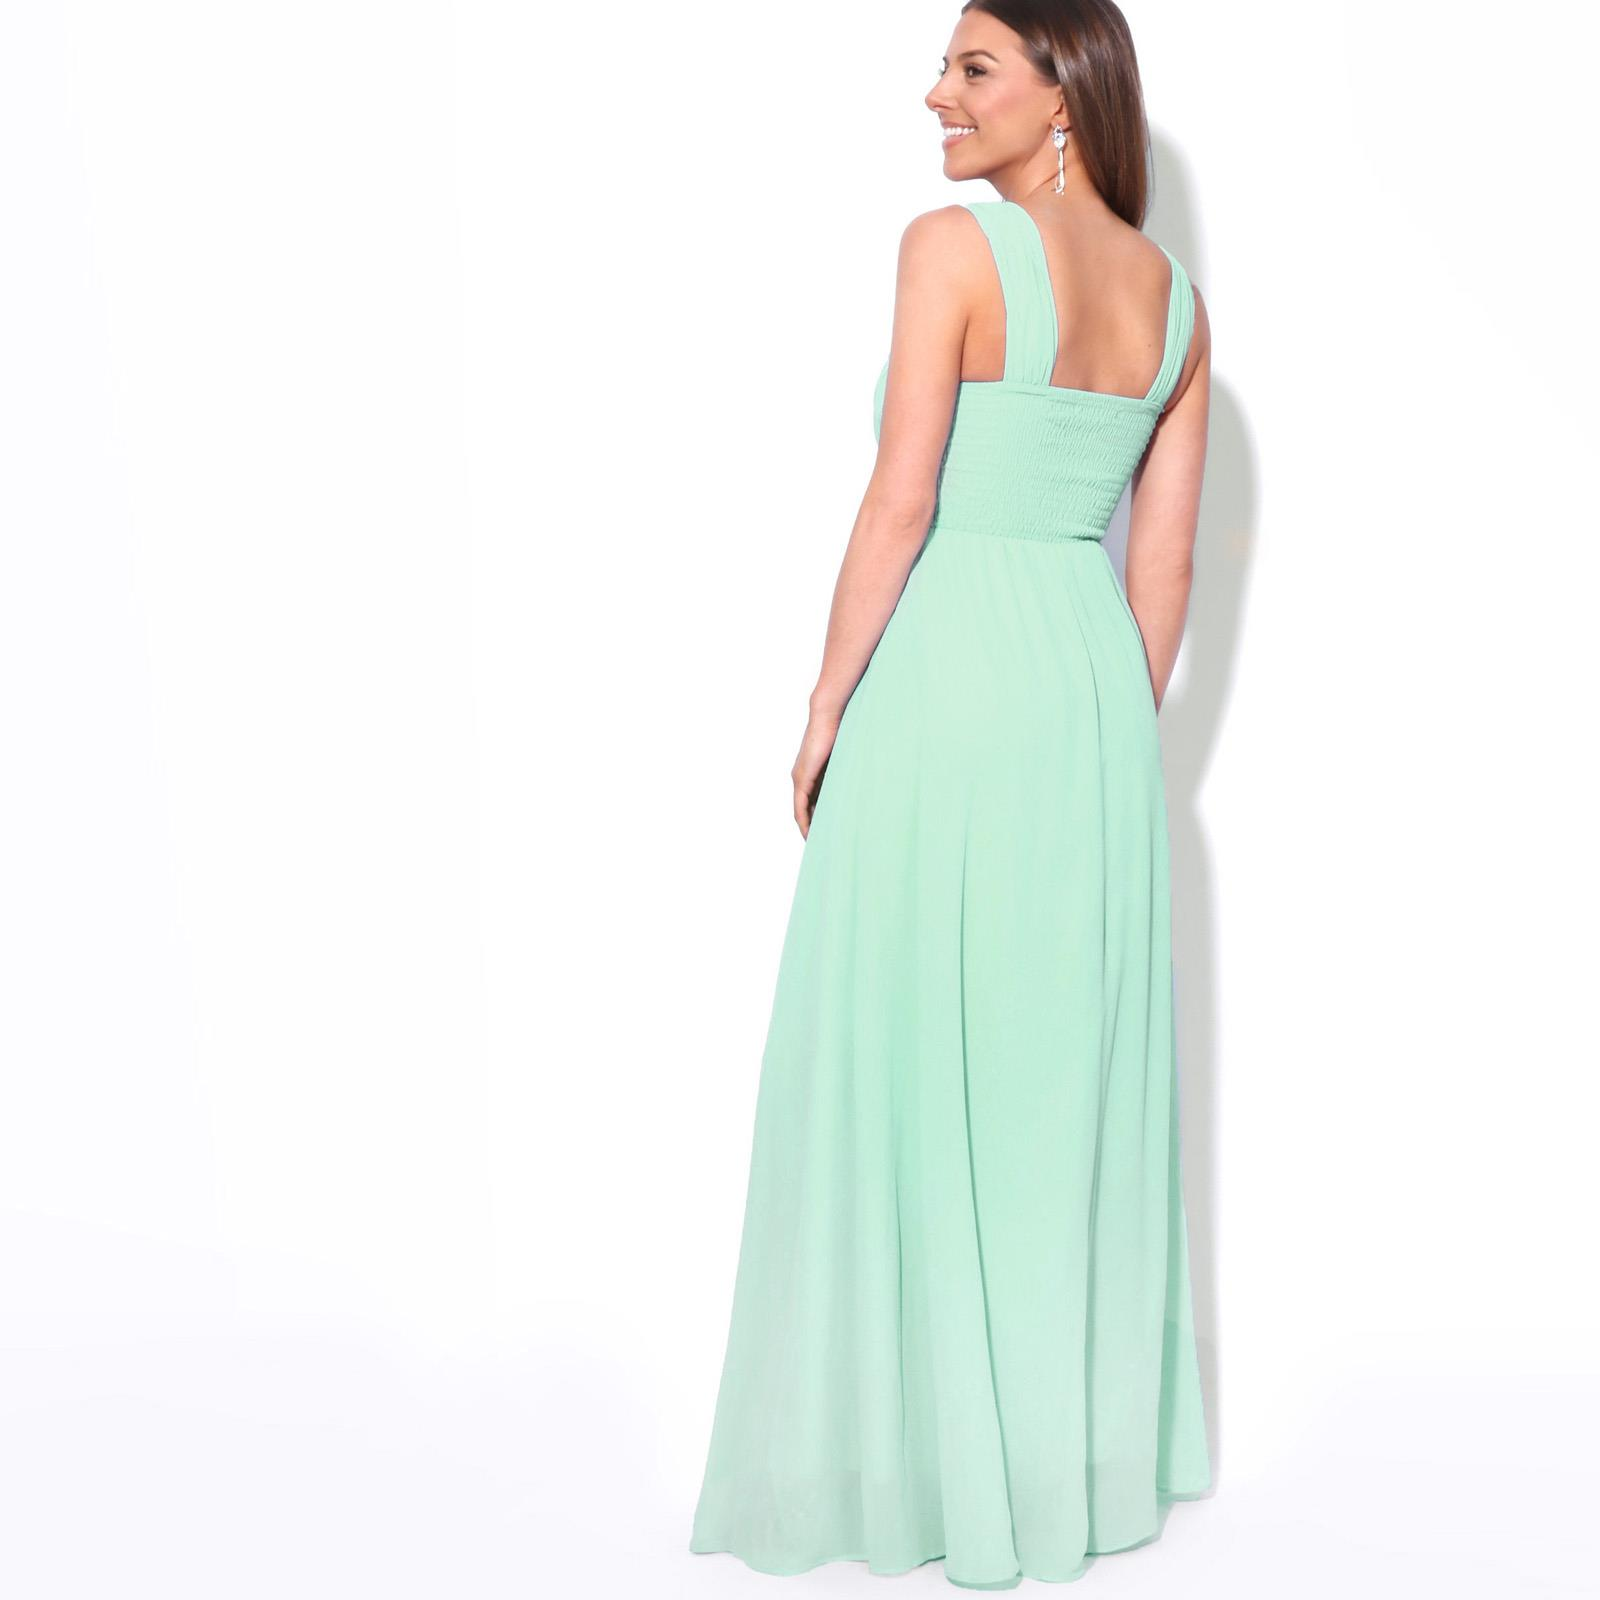 Women-Formal-Dress-Evening-Wedding-Ball-Long-Gown-Maxi-Prom-On-Off-Shoulder-8-18 thumbnail 32